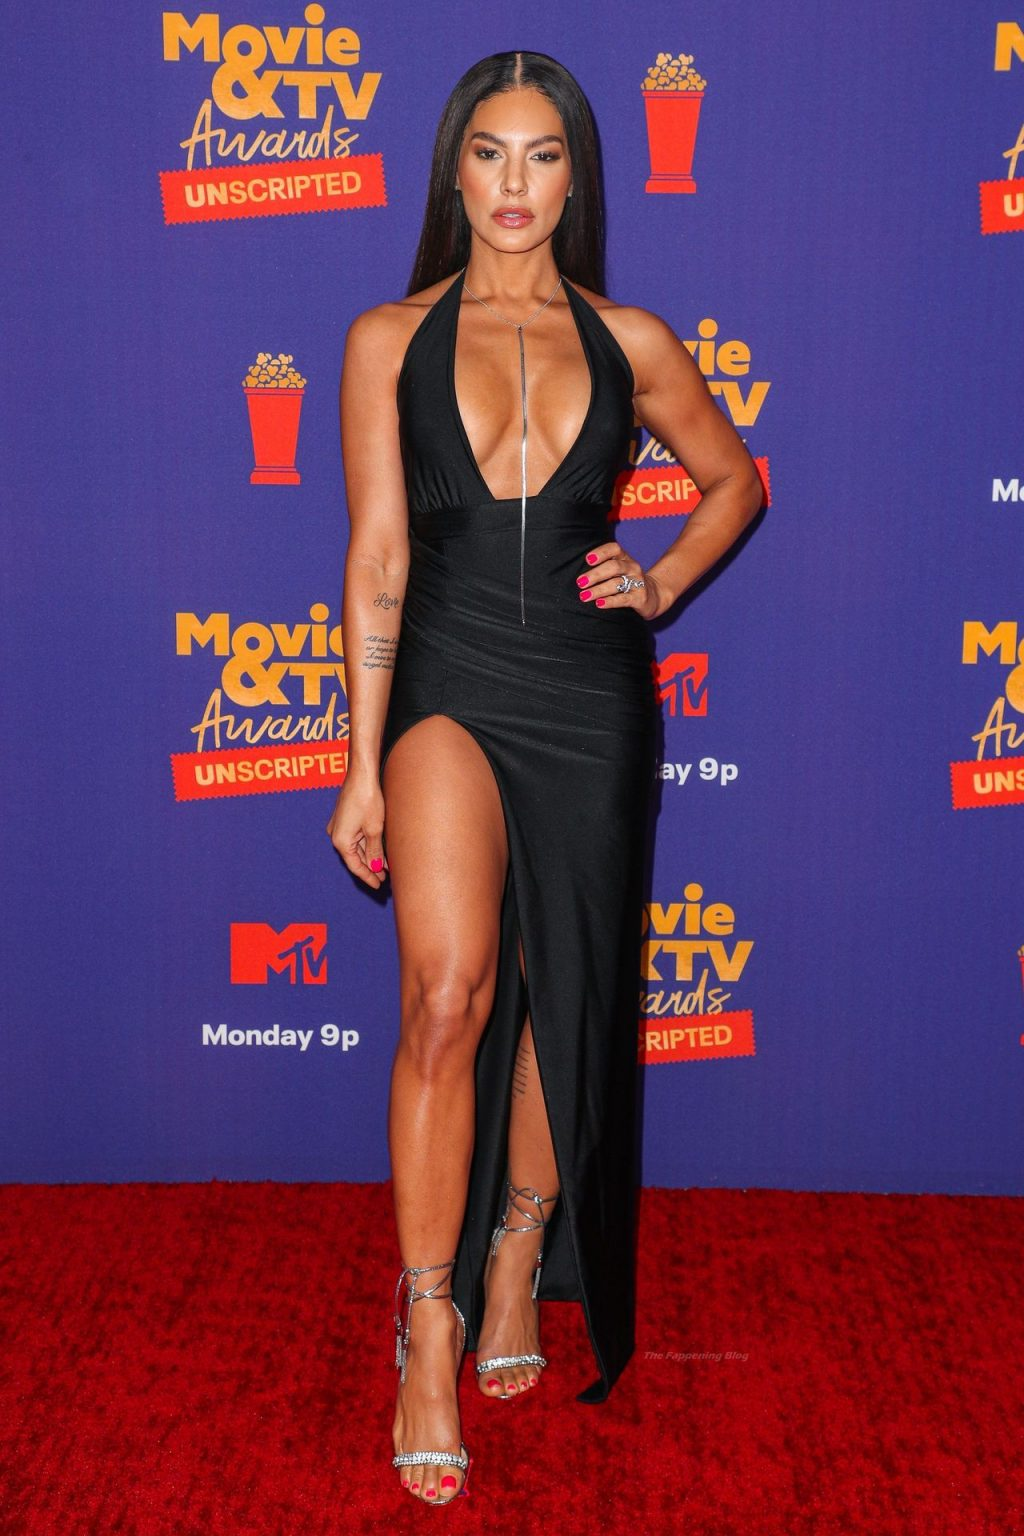 Amanza Smith Shows Off Her Tits at the 2021 MTV Movie & TV Awards (8 Photos + Video)